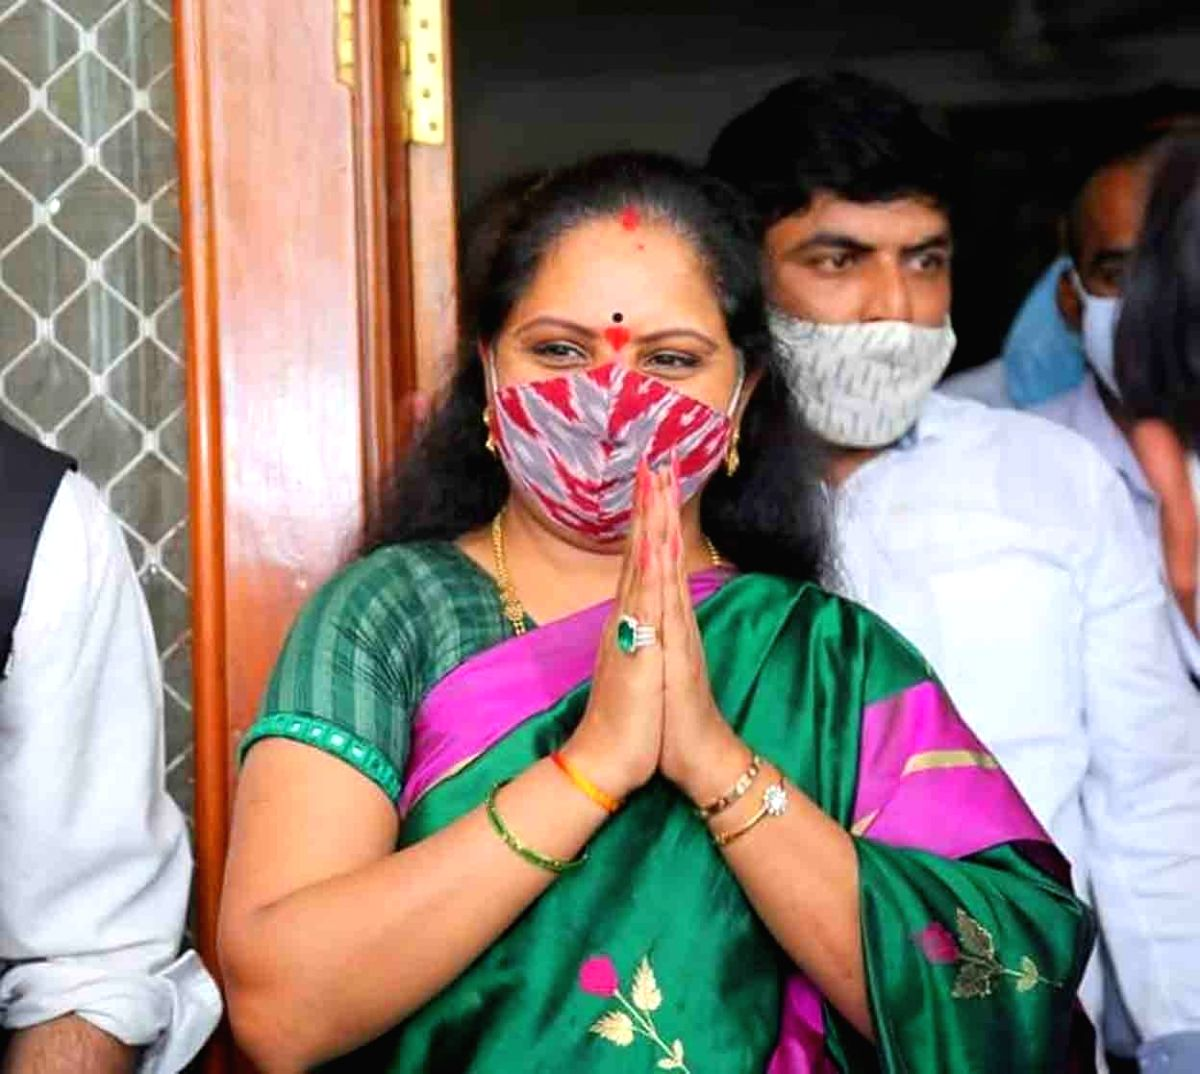 Hyderabad: After a hibernation of more than a year following her shocking defeat in Lok Sabha elections, Telangana Chief Minister K. Chandrasekhar Raos daughter K. Kavitha returned to active politics with her election to the State Legislative Council